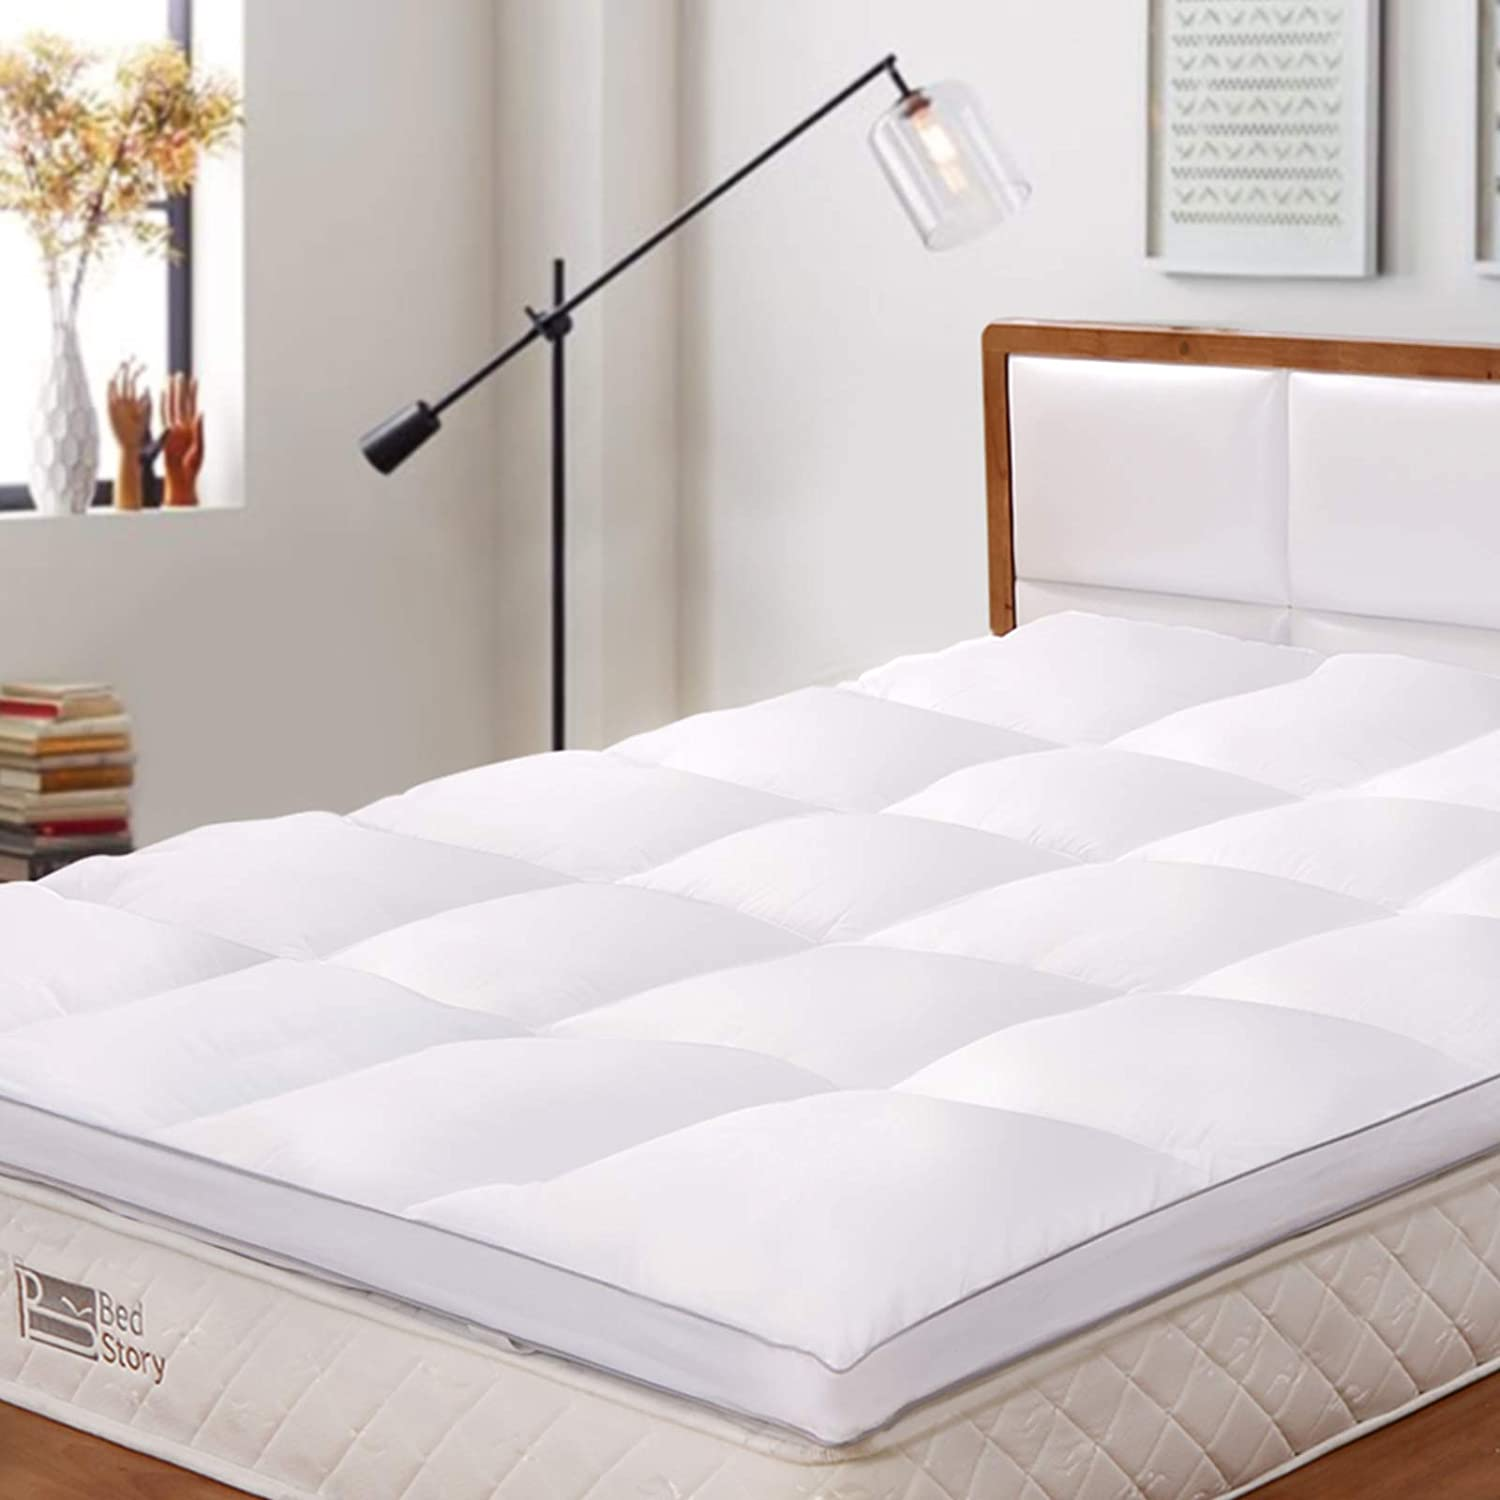 BedStory Extra スピード対応 全国送料無料 Thick Mattress メーカー公式 Topper Size King 2.5inch Cooling